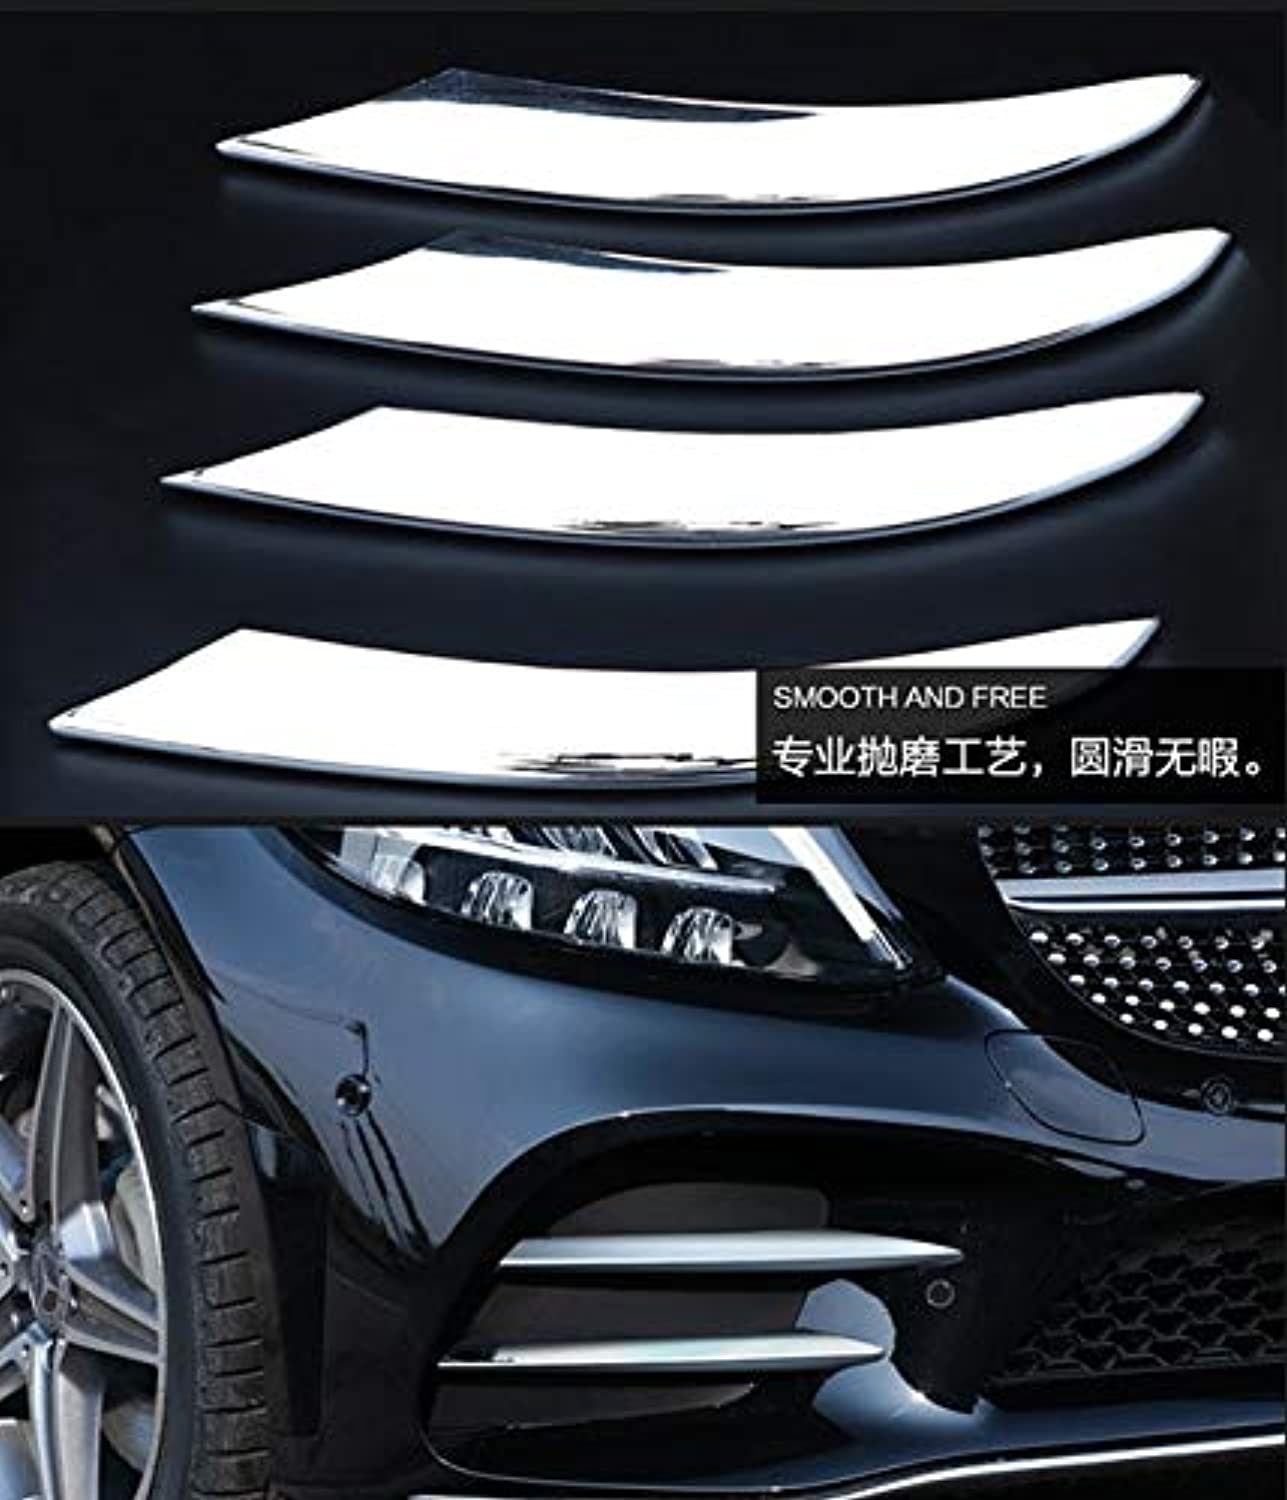 For Mercedes Benz C Class W205 2019 Car Styling Front Fog Lamps Cover Grille slats Lights Sticker Decoration Strips Accessories  (color Name  Silver)